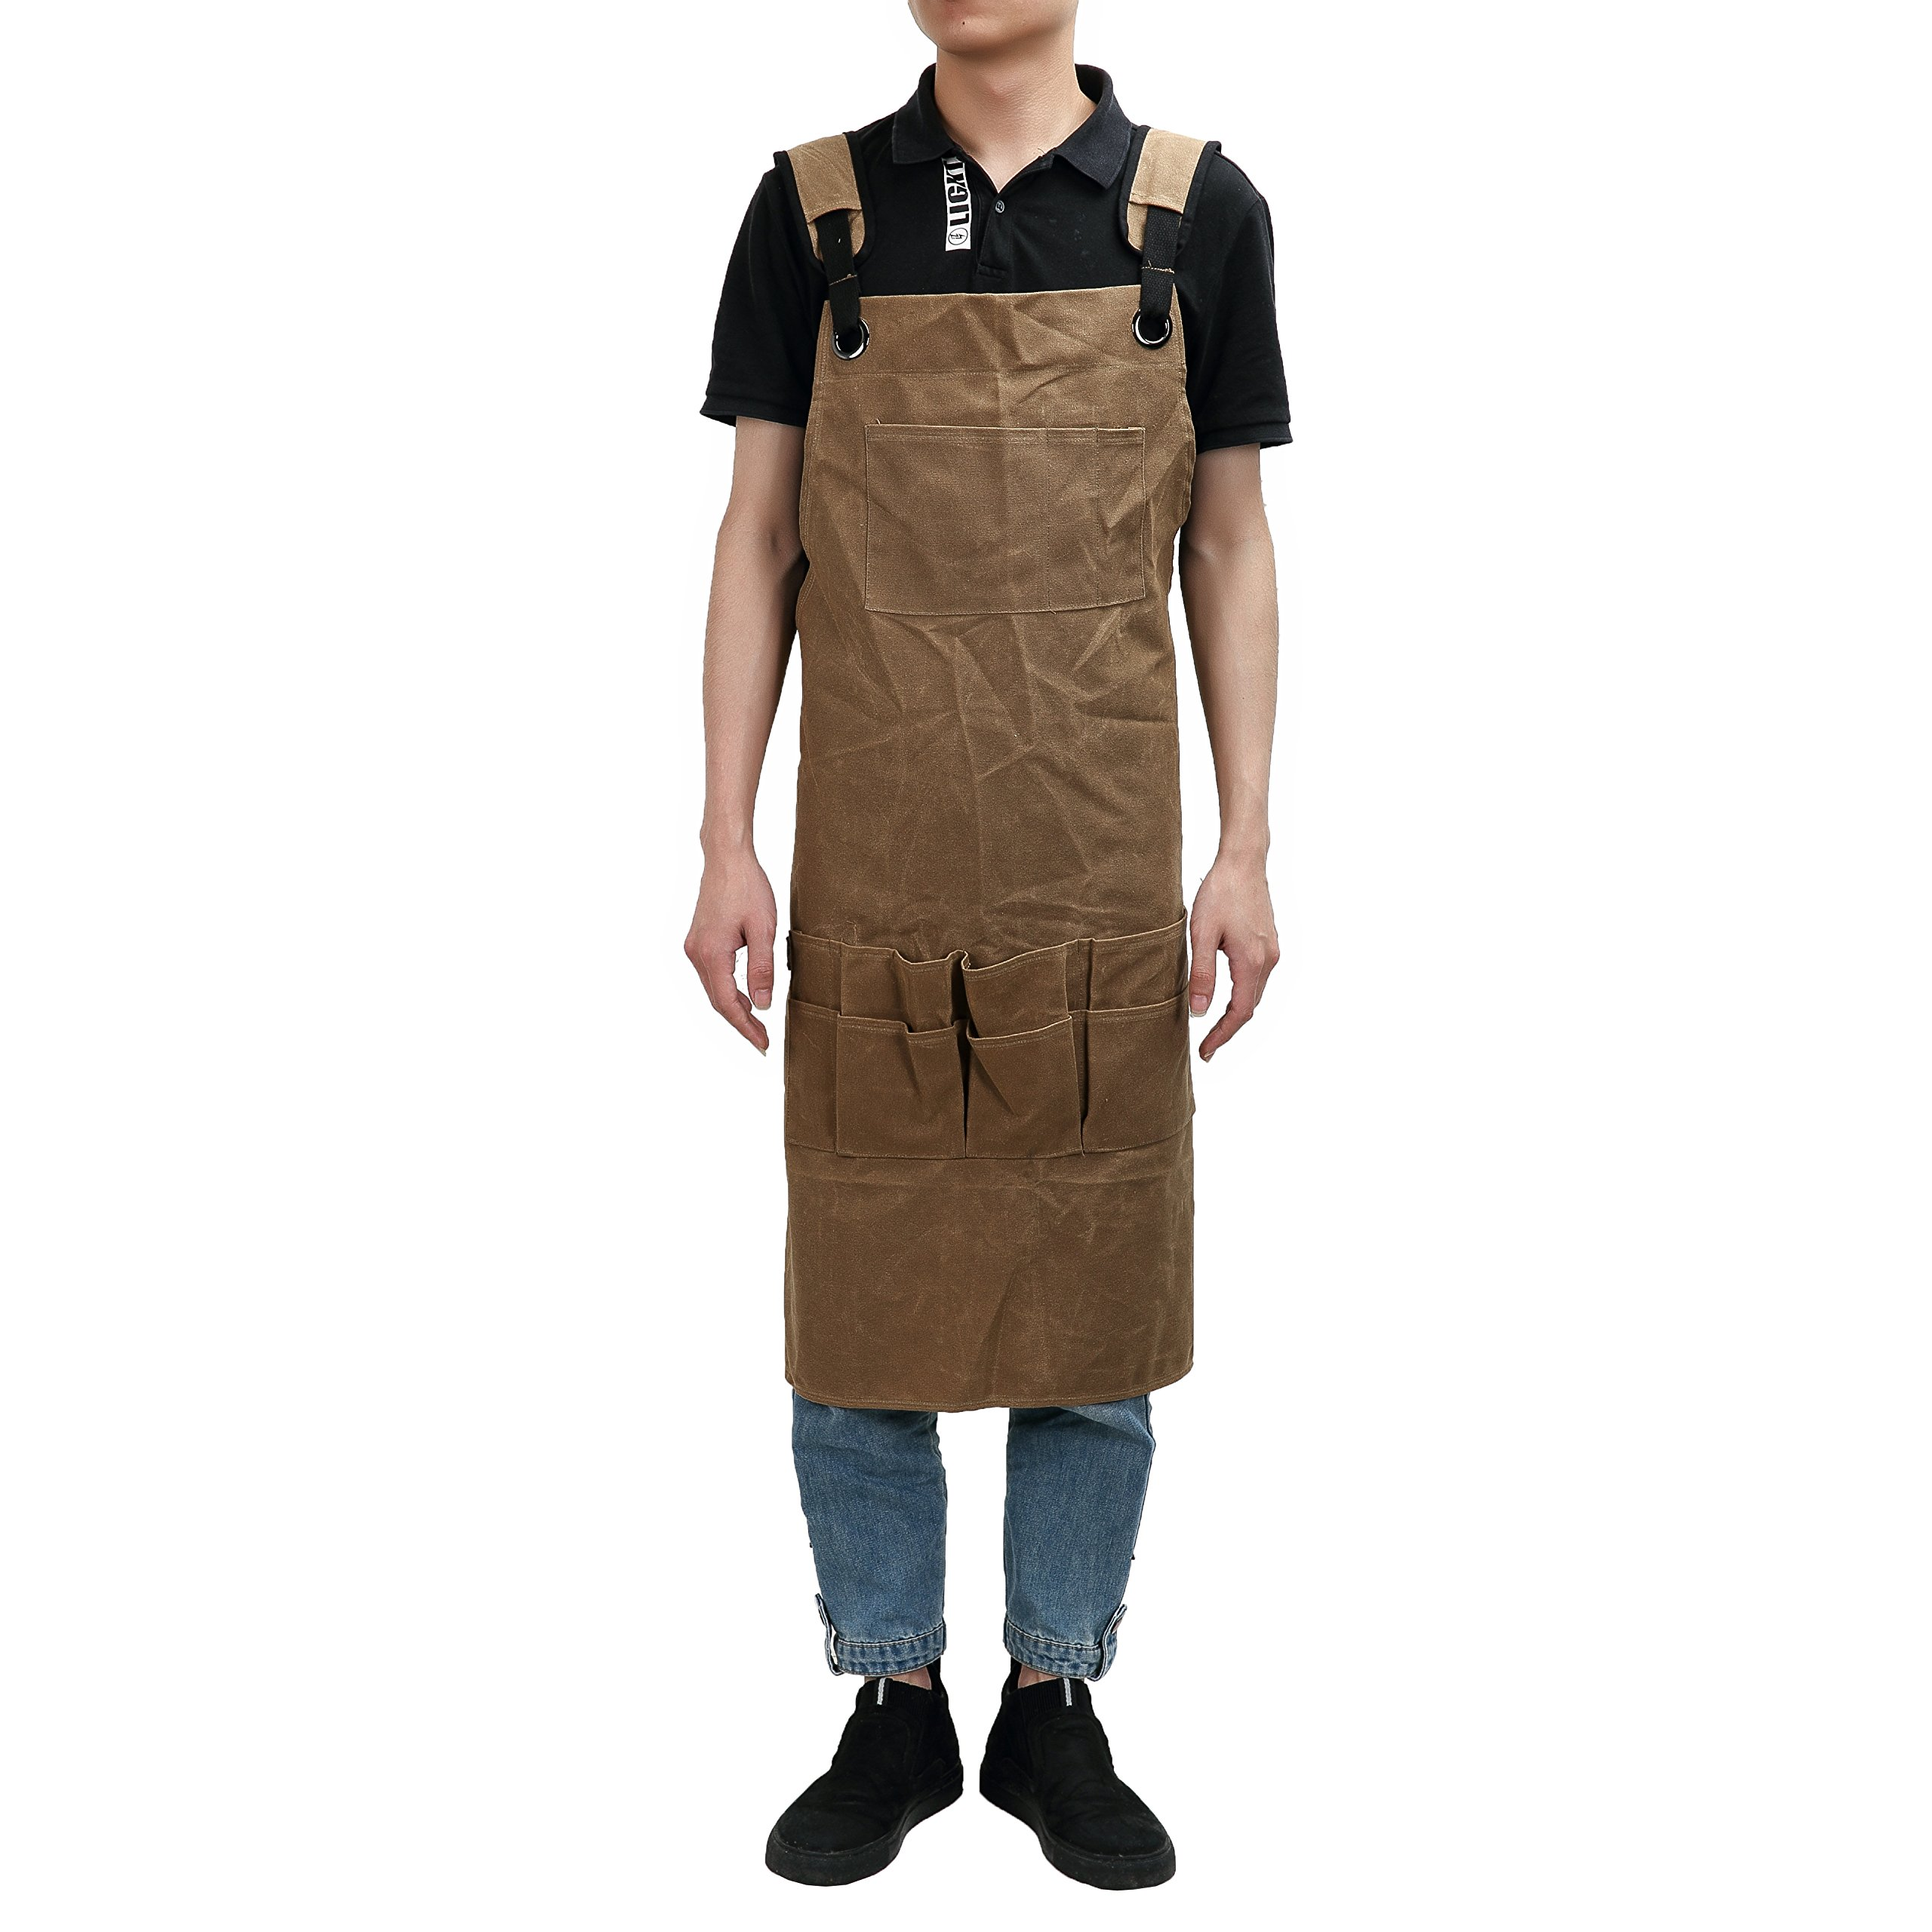 QEES Waterproof Garden Tool Apron Heavy Duty Waxed Canvas Workman Apron with Large Multi Tool Pockets and Adjustable Belt for Engineers Carpenter Handymen Fit Kitchen, Garden, Pottery, Craft Workshop,